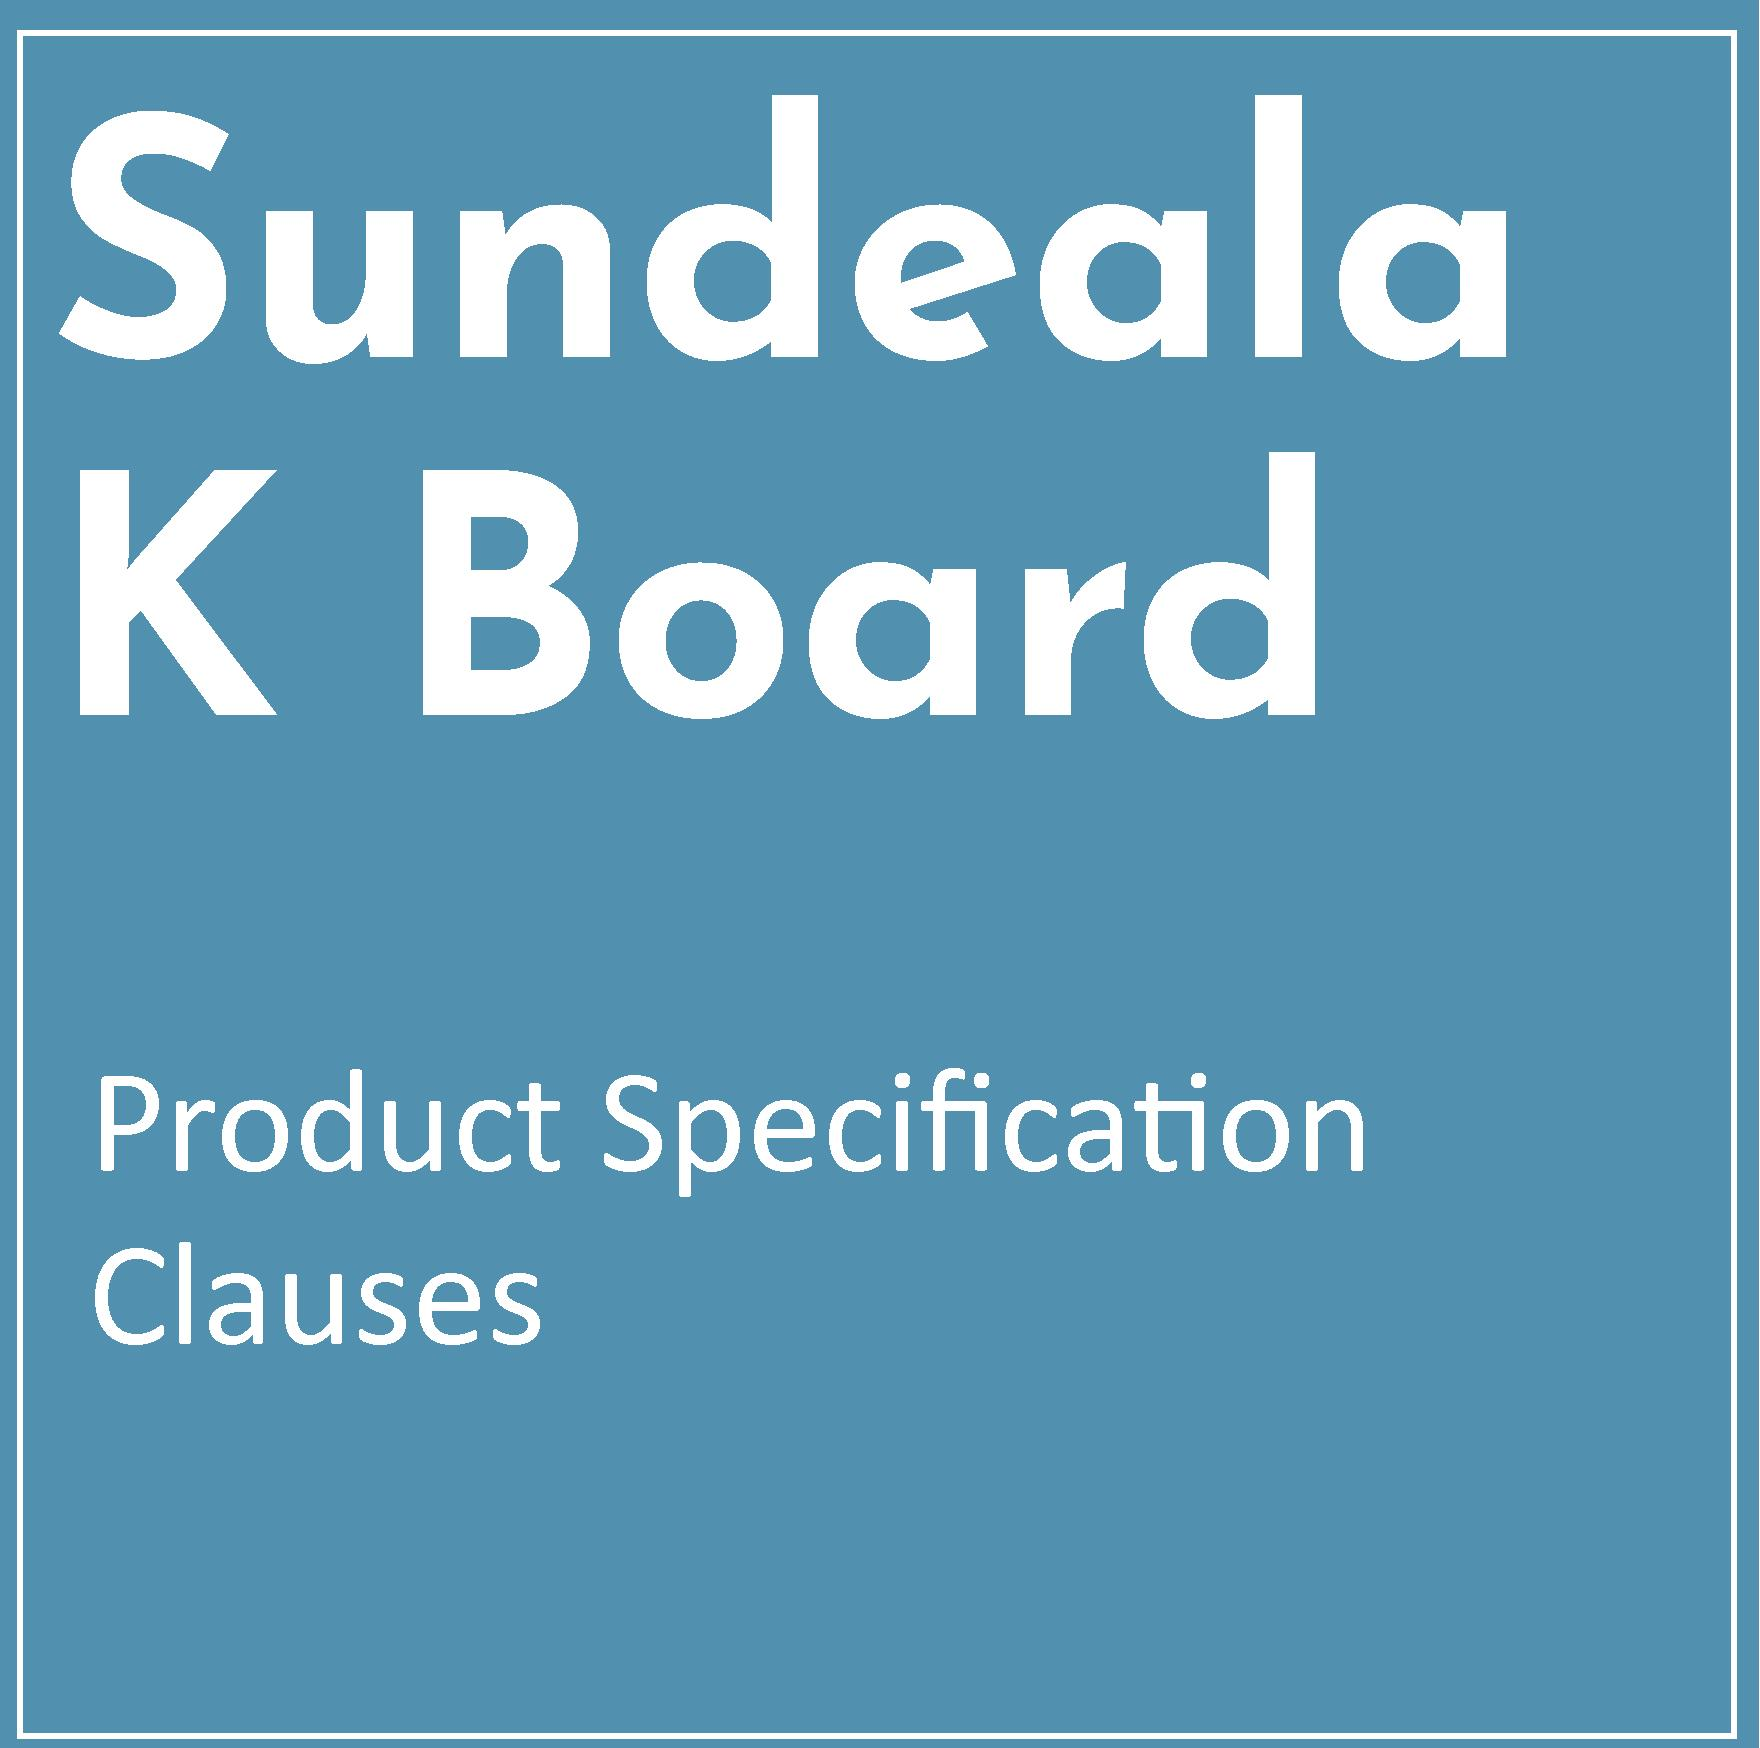 Product Specification Clauses – Sundeala K Board